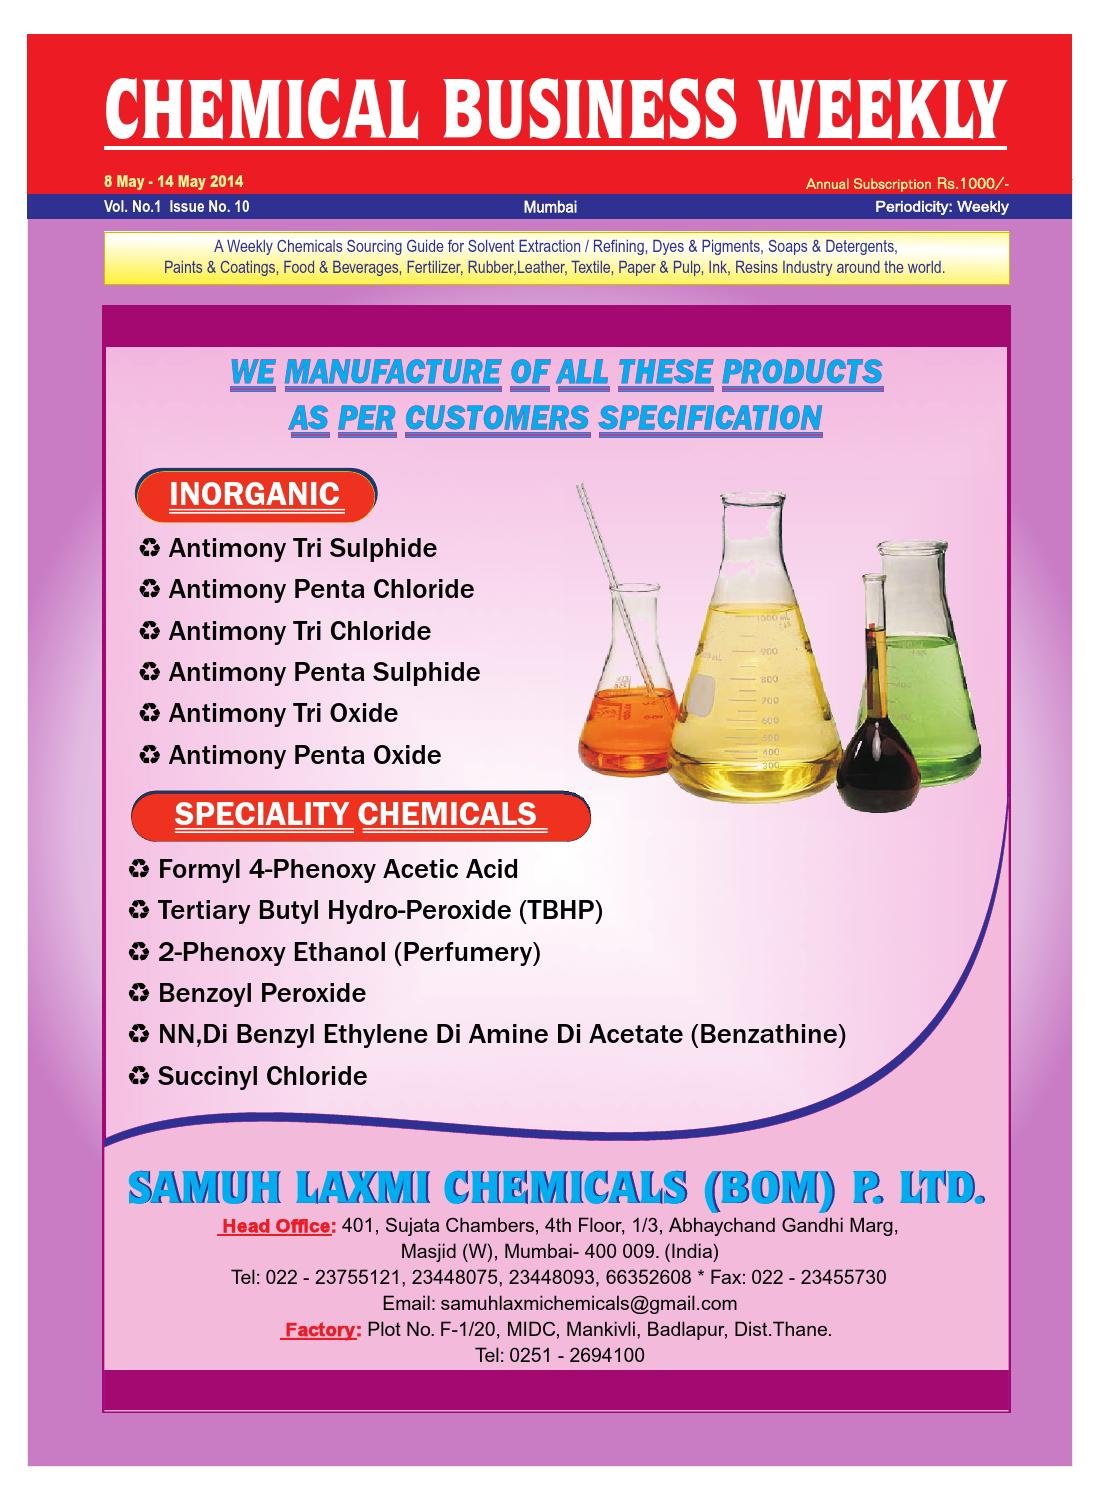 Chemical Business Weekly 8th May - 14th May 2014 by The Mazada